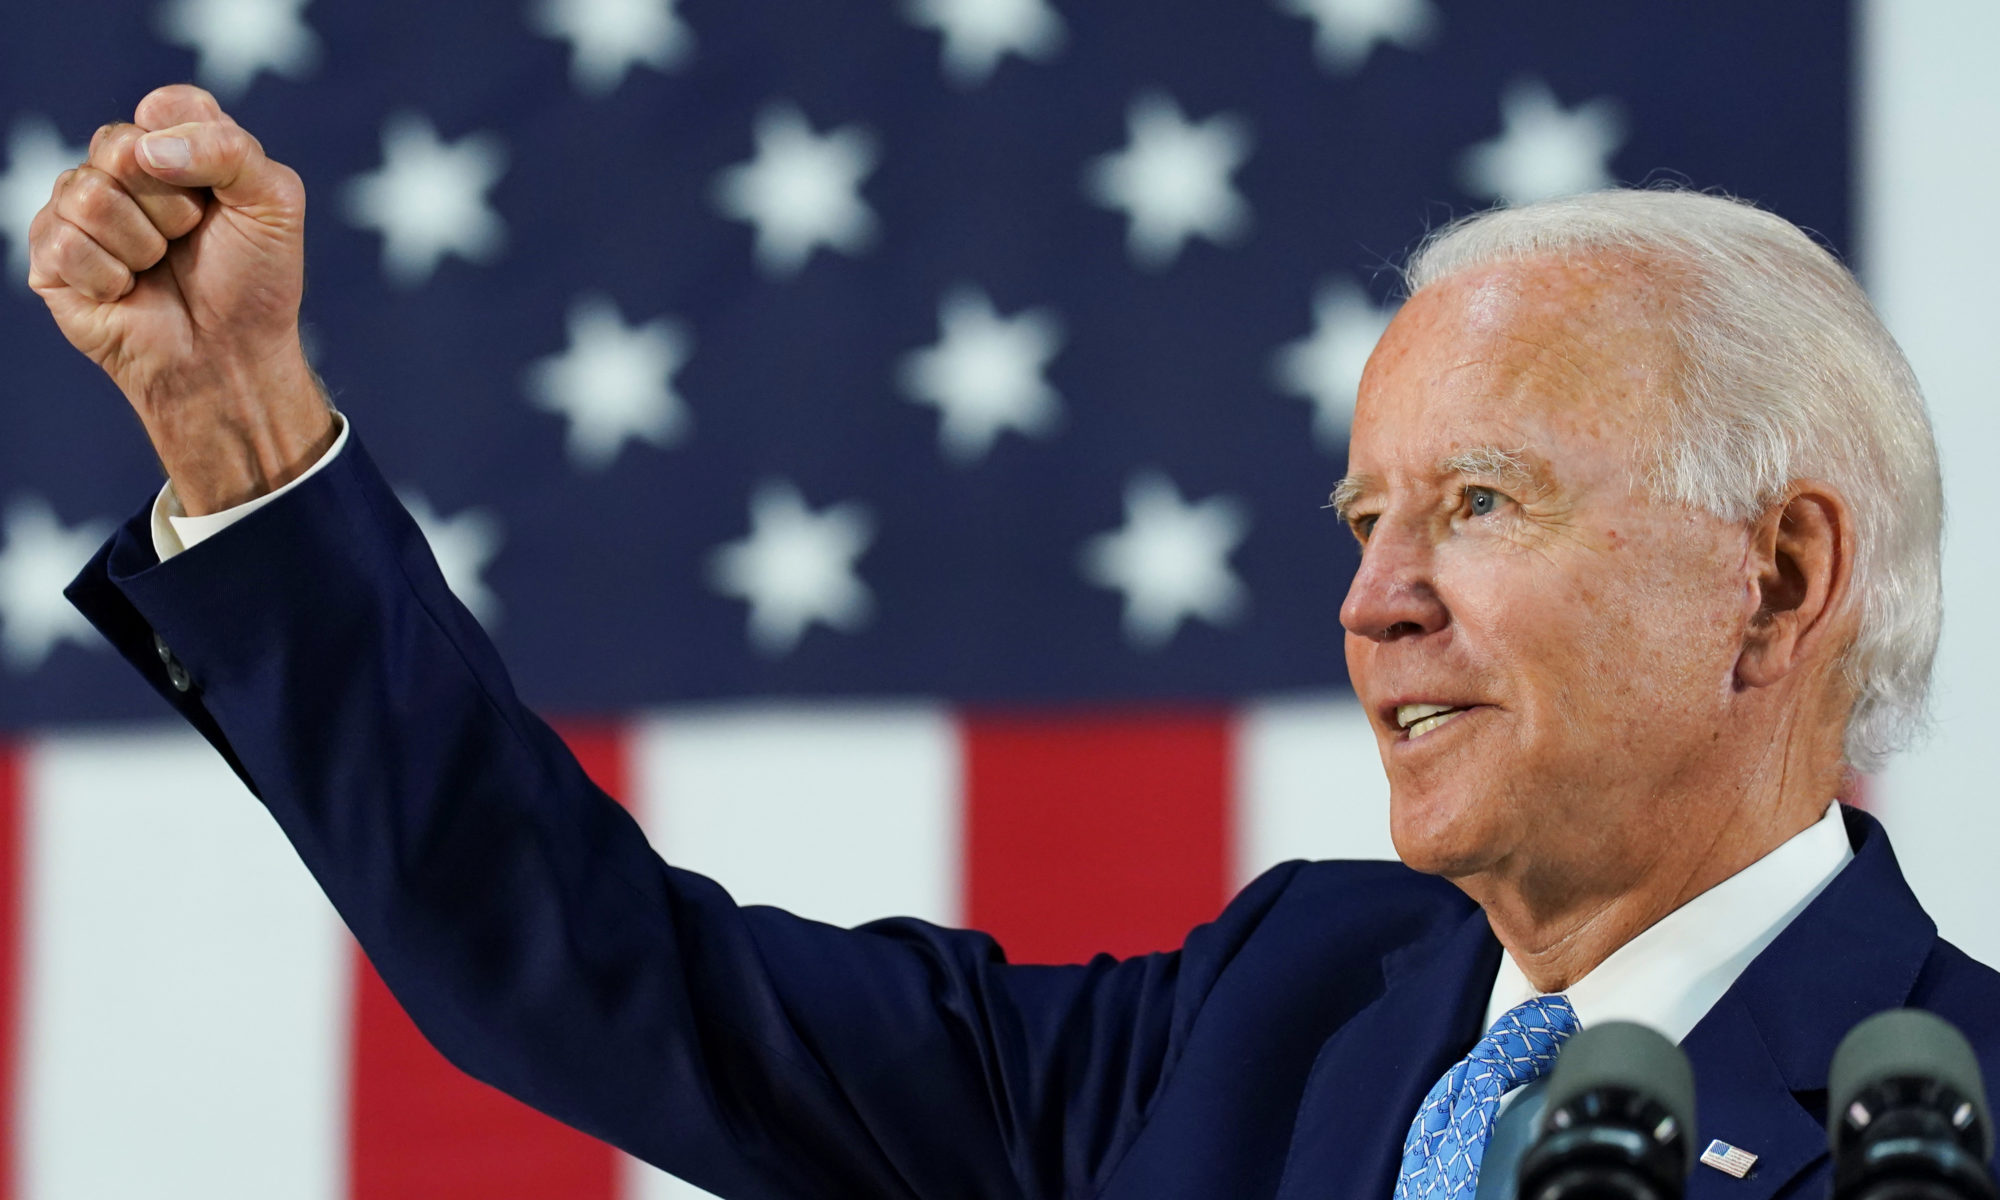 Democratic U.S. presidential candidate Biden holds campaign event in Wilmington, Delaware